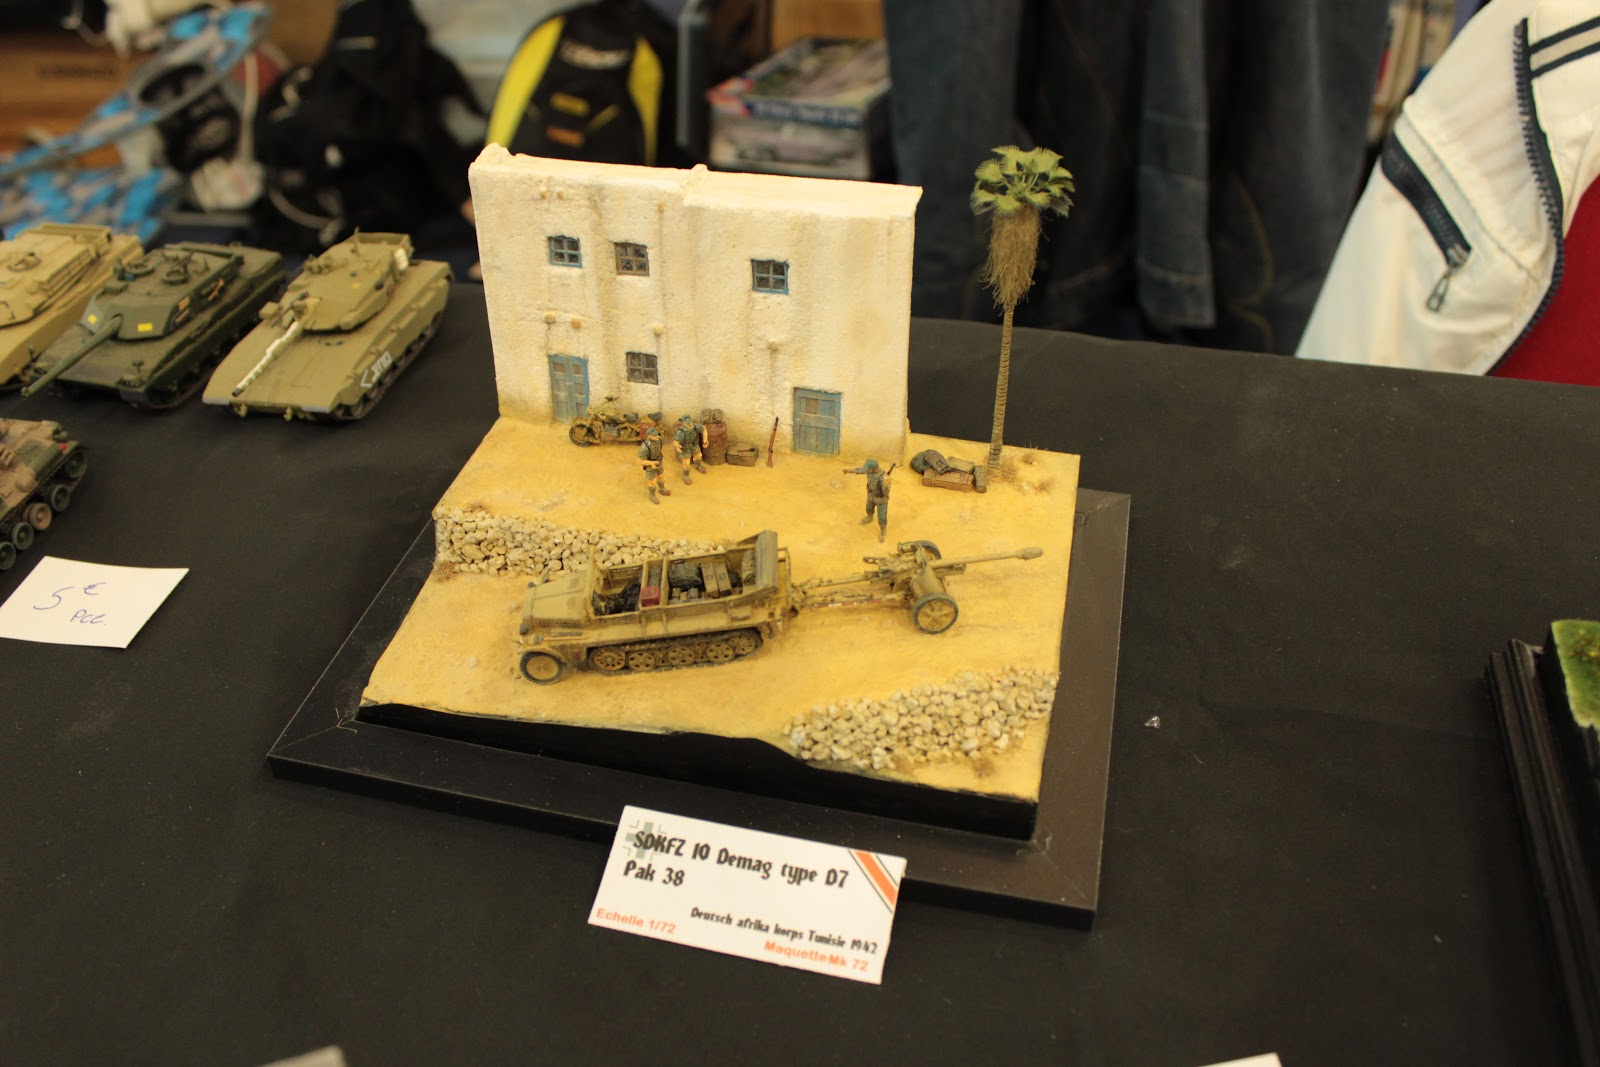 Maquettexpo 2017 14-15 octobre Hyères - Page 4 IMG_4208